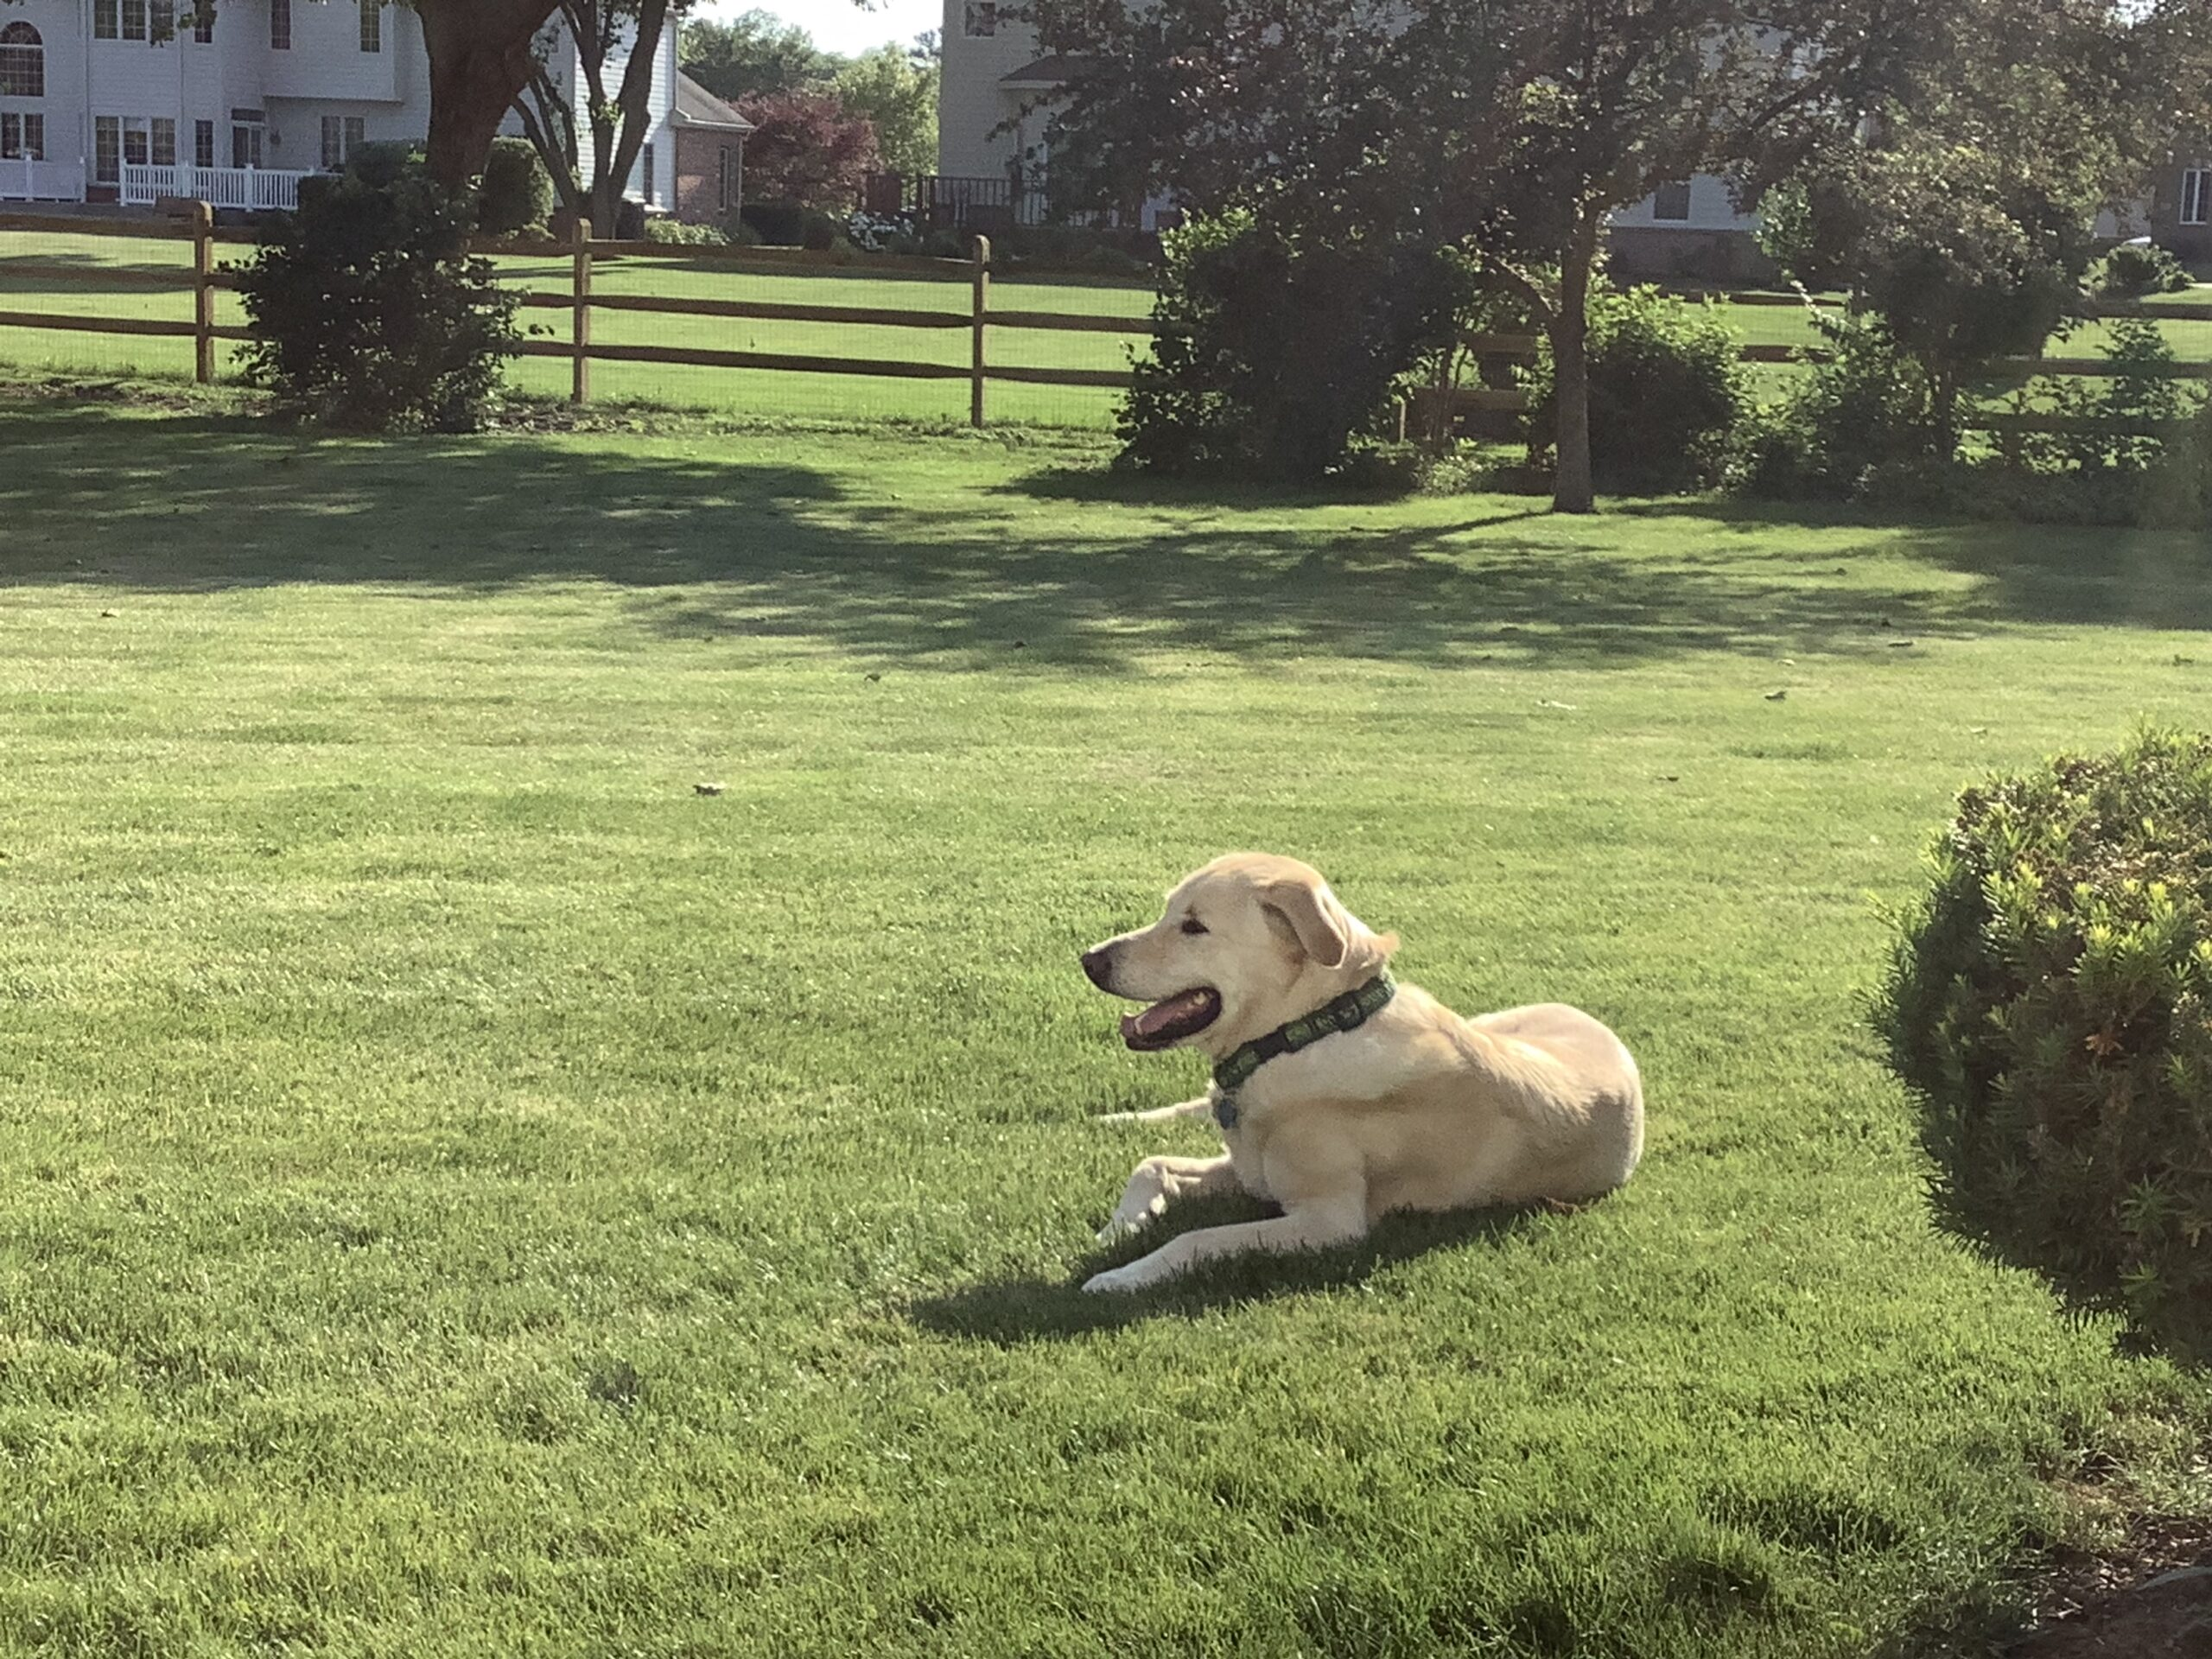 Yellow lab in grass with split rail fence